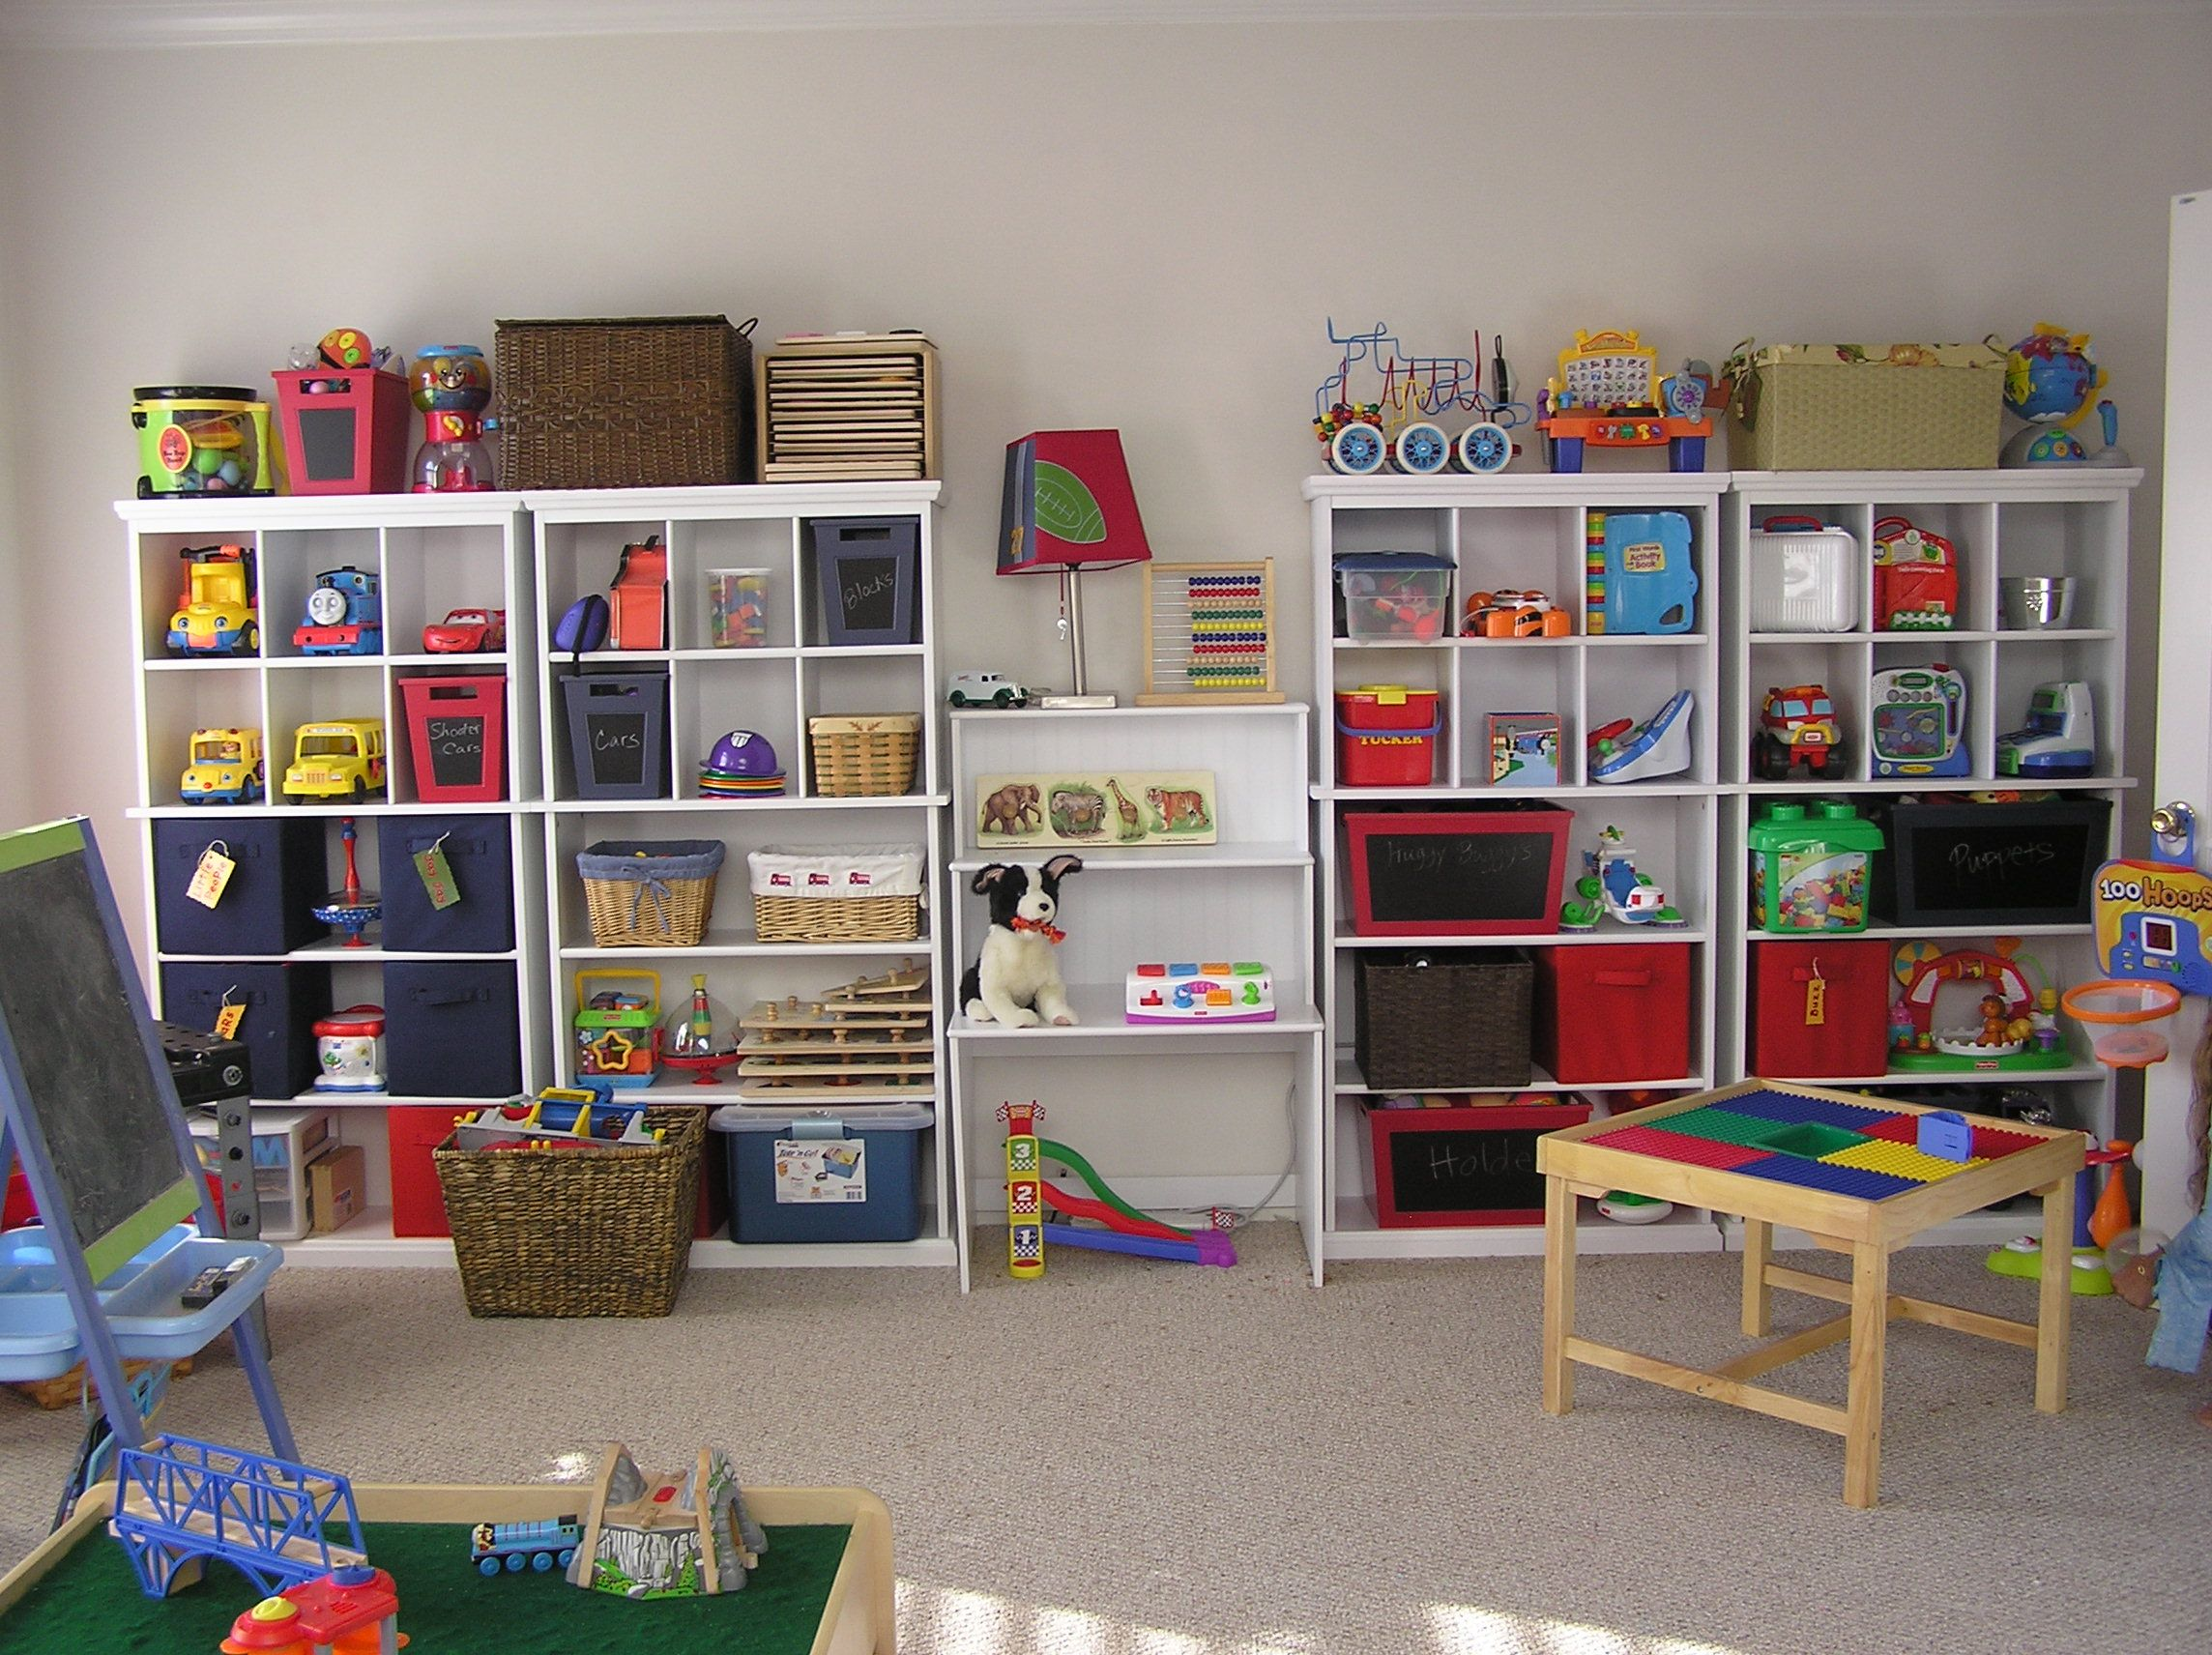 Kids room organization ideas organizing kids toysamy - Ideas for storing toys in living room ...